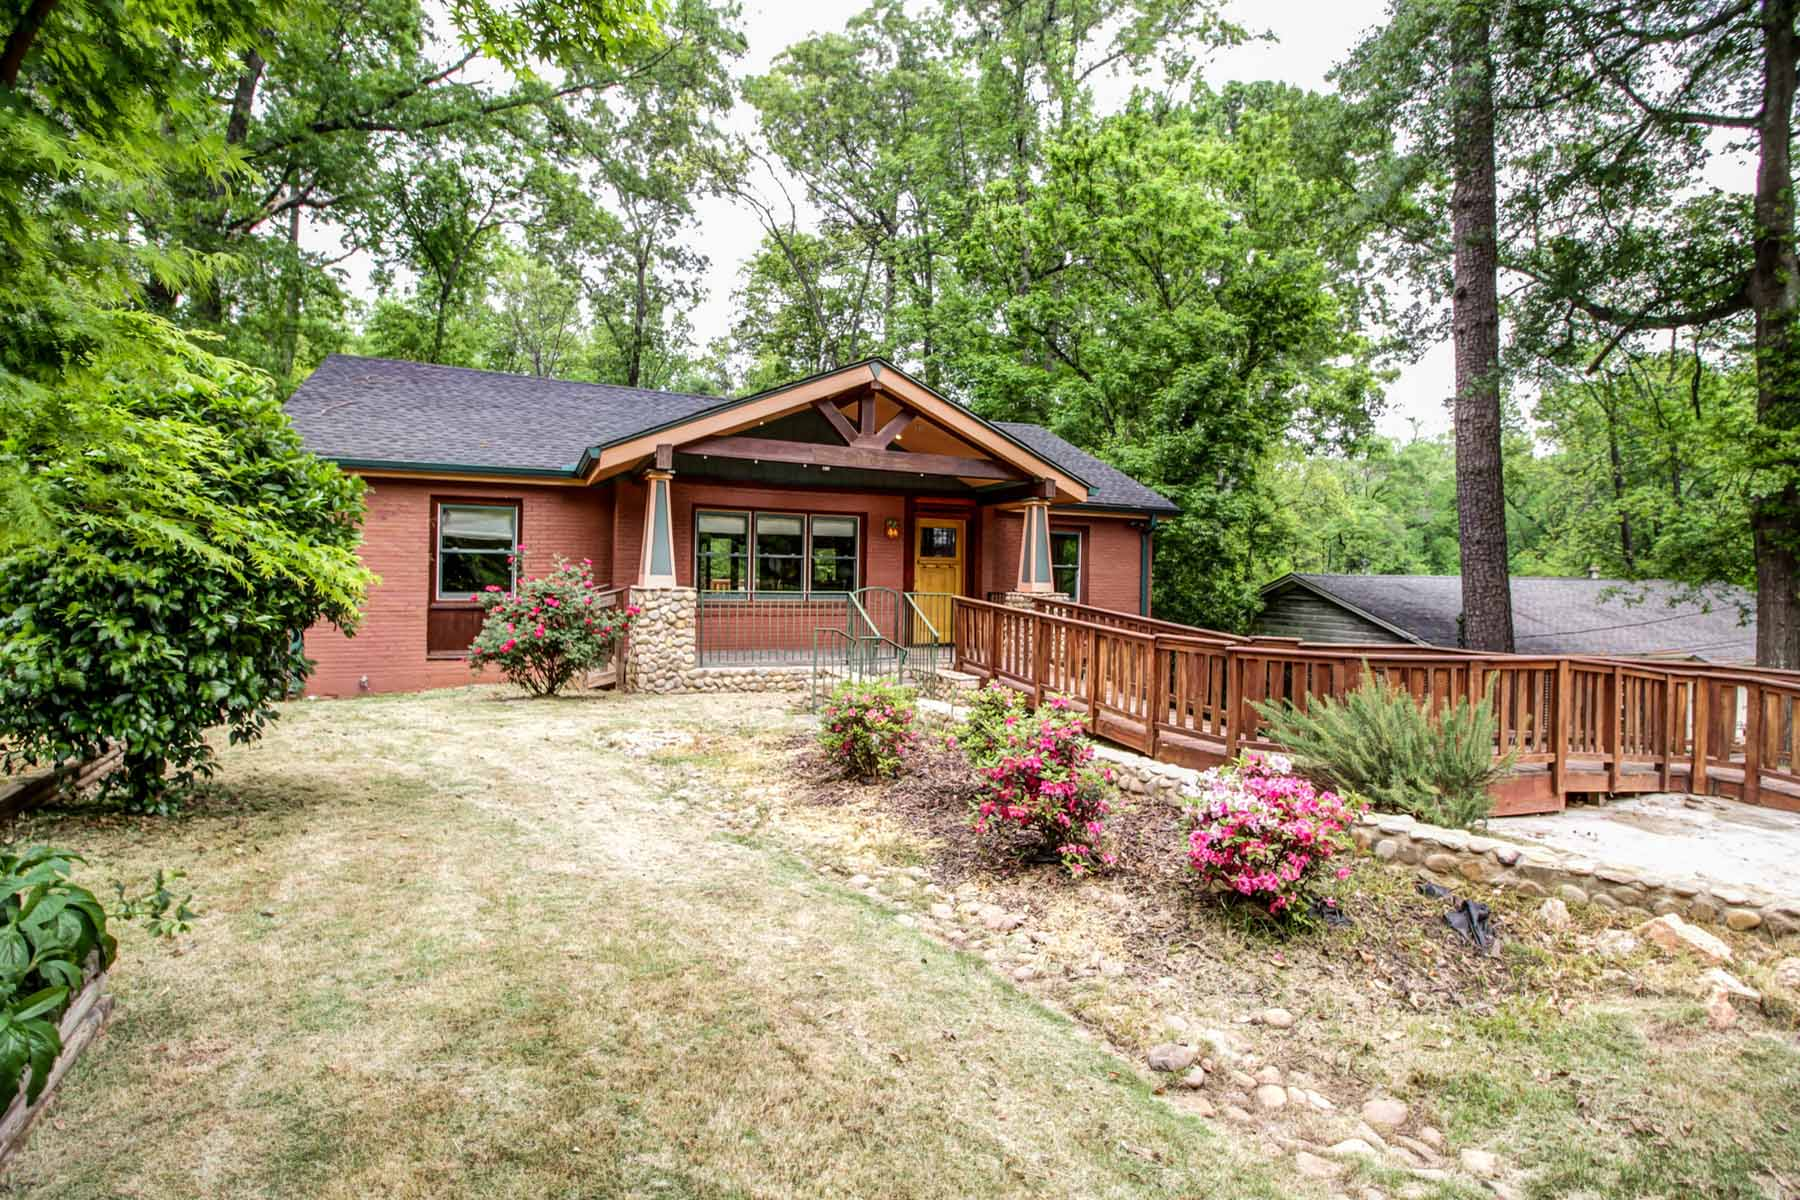 sales property at River rock cottage on estate lot with private, wooded views